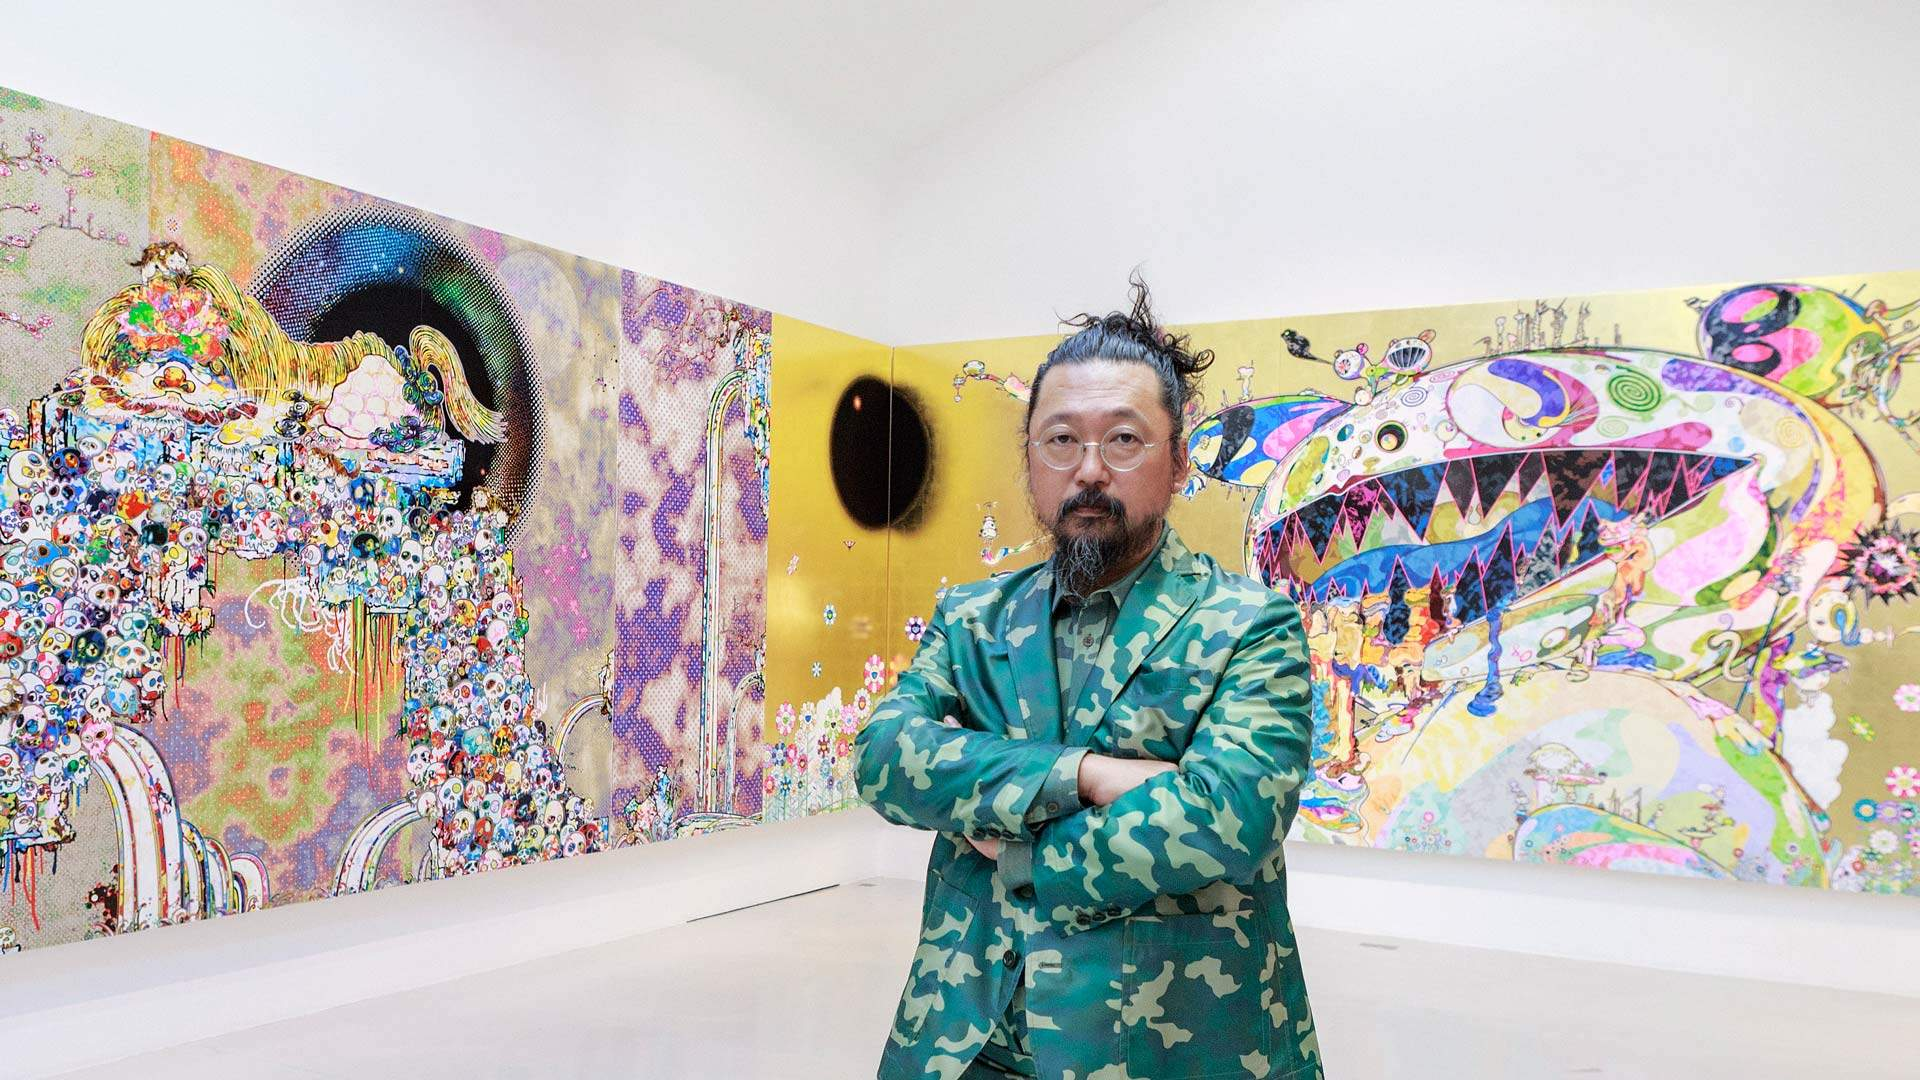 Works by Japanese Artists Murakami and Hokusai Are Coming to the Art Gallery of NSW